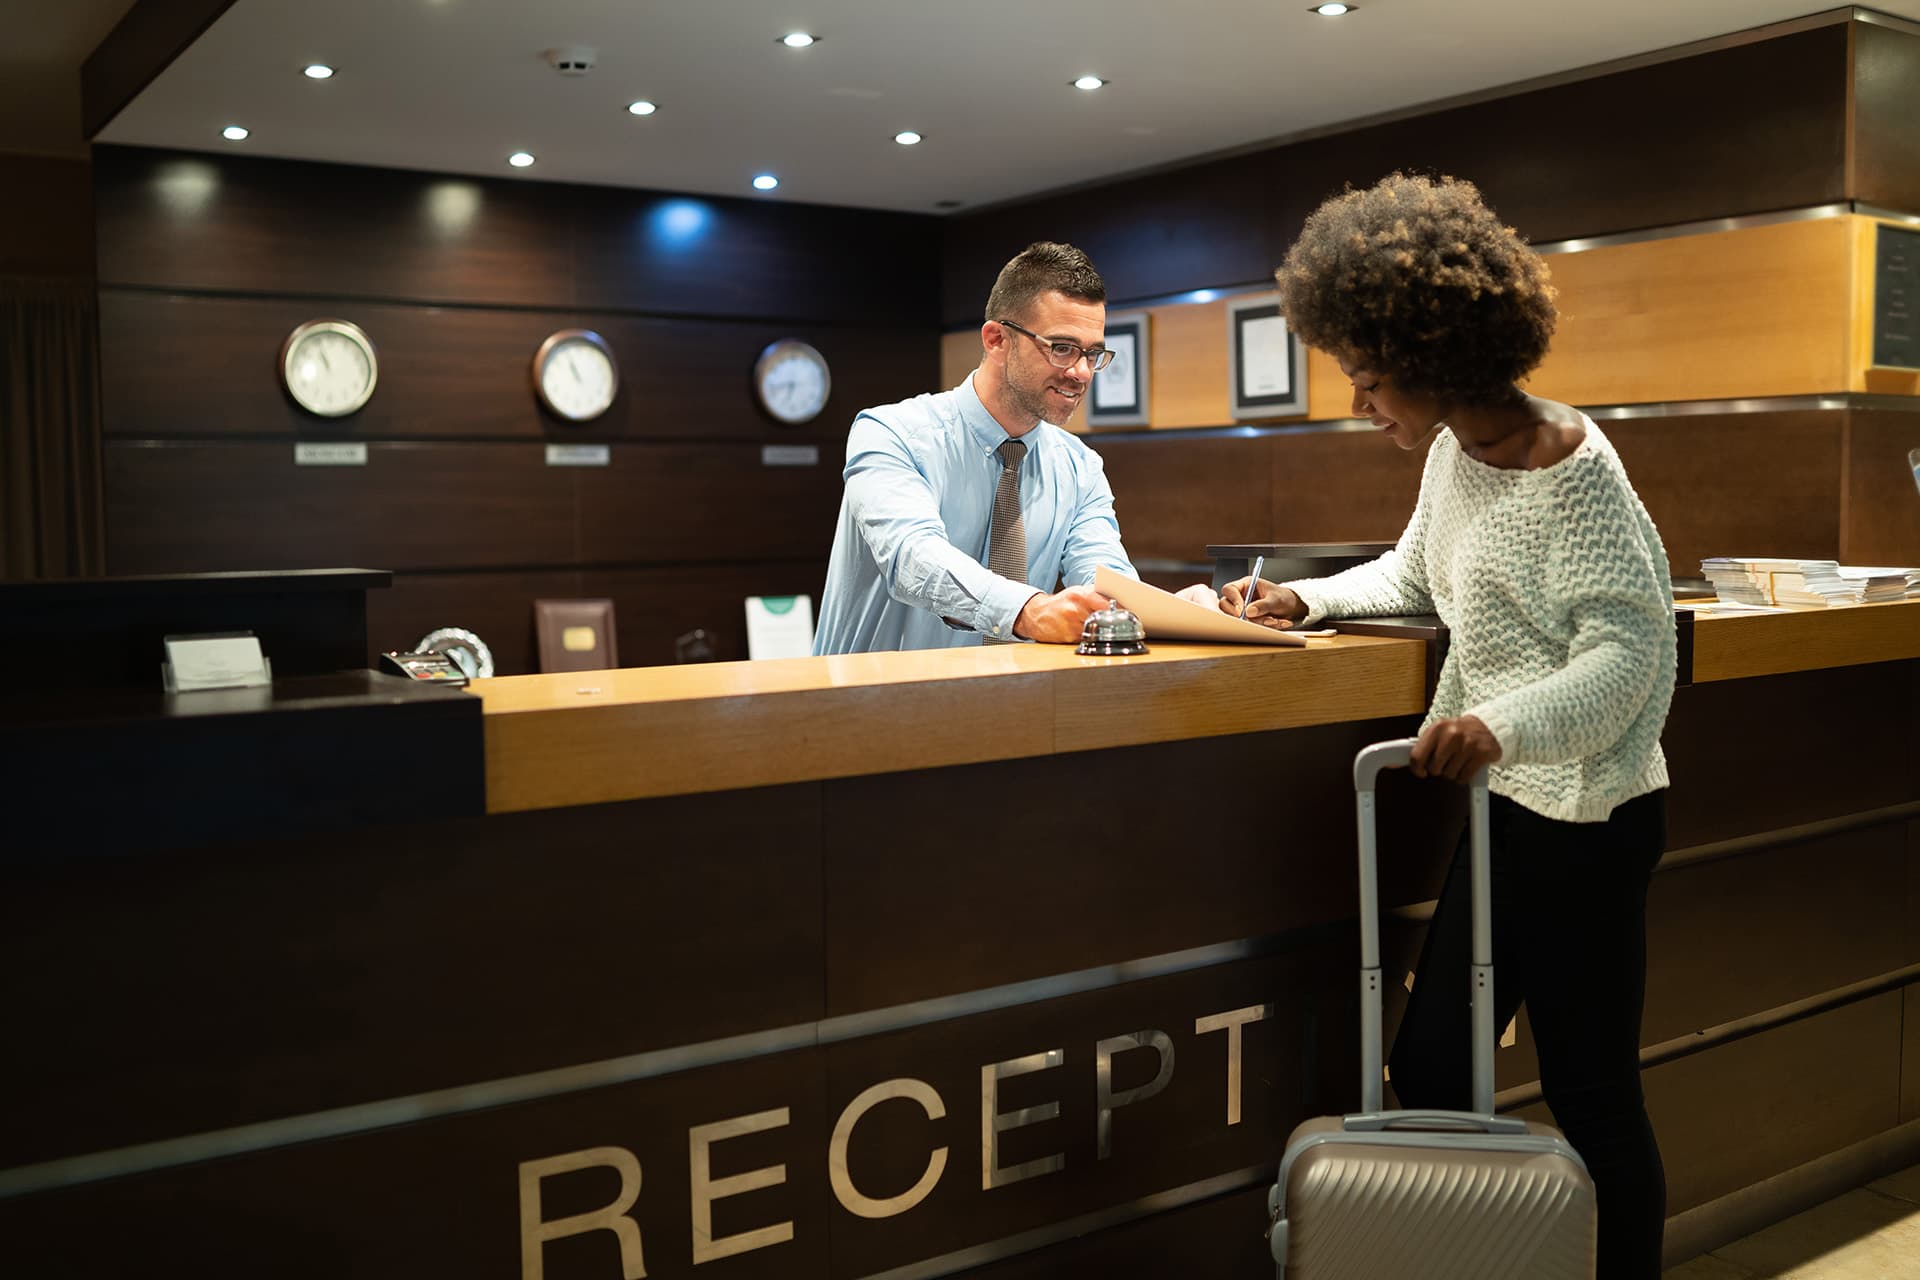 Man at a reception desk helping a woman checking into a hotel with hotel insurance